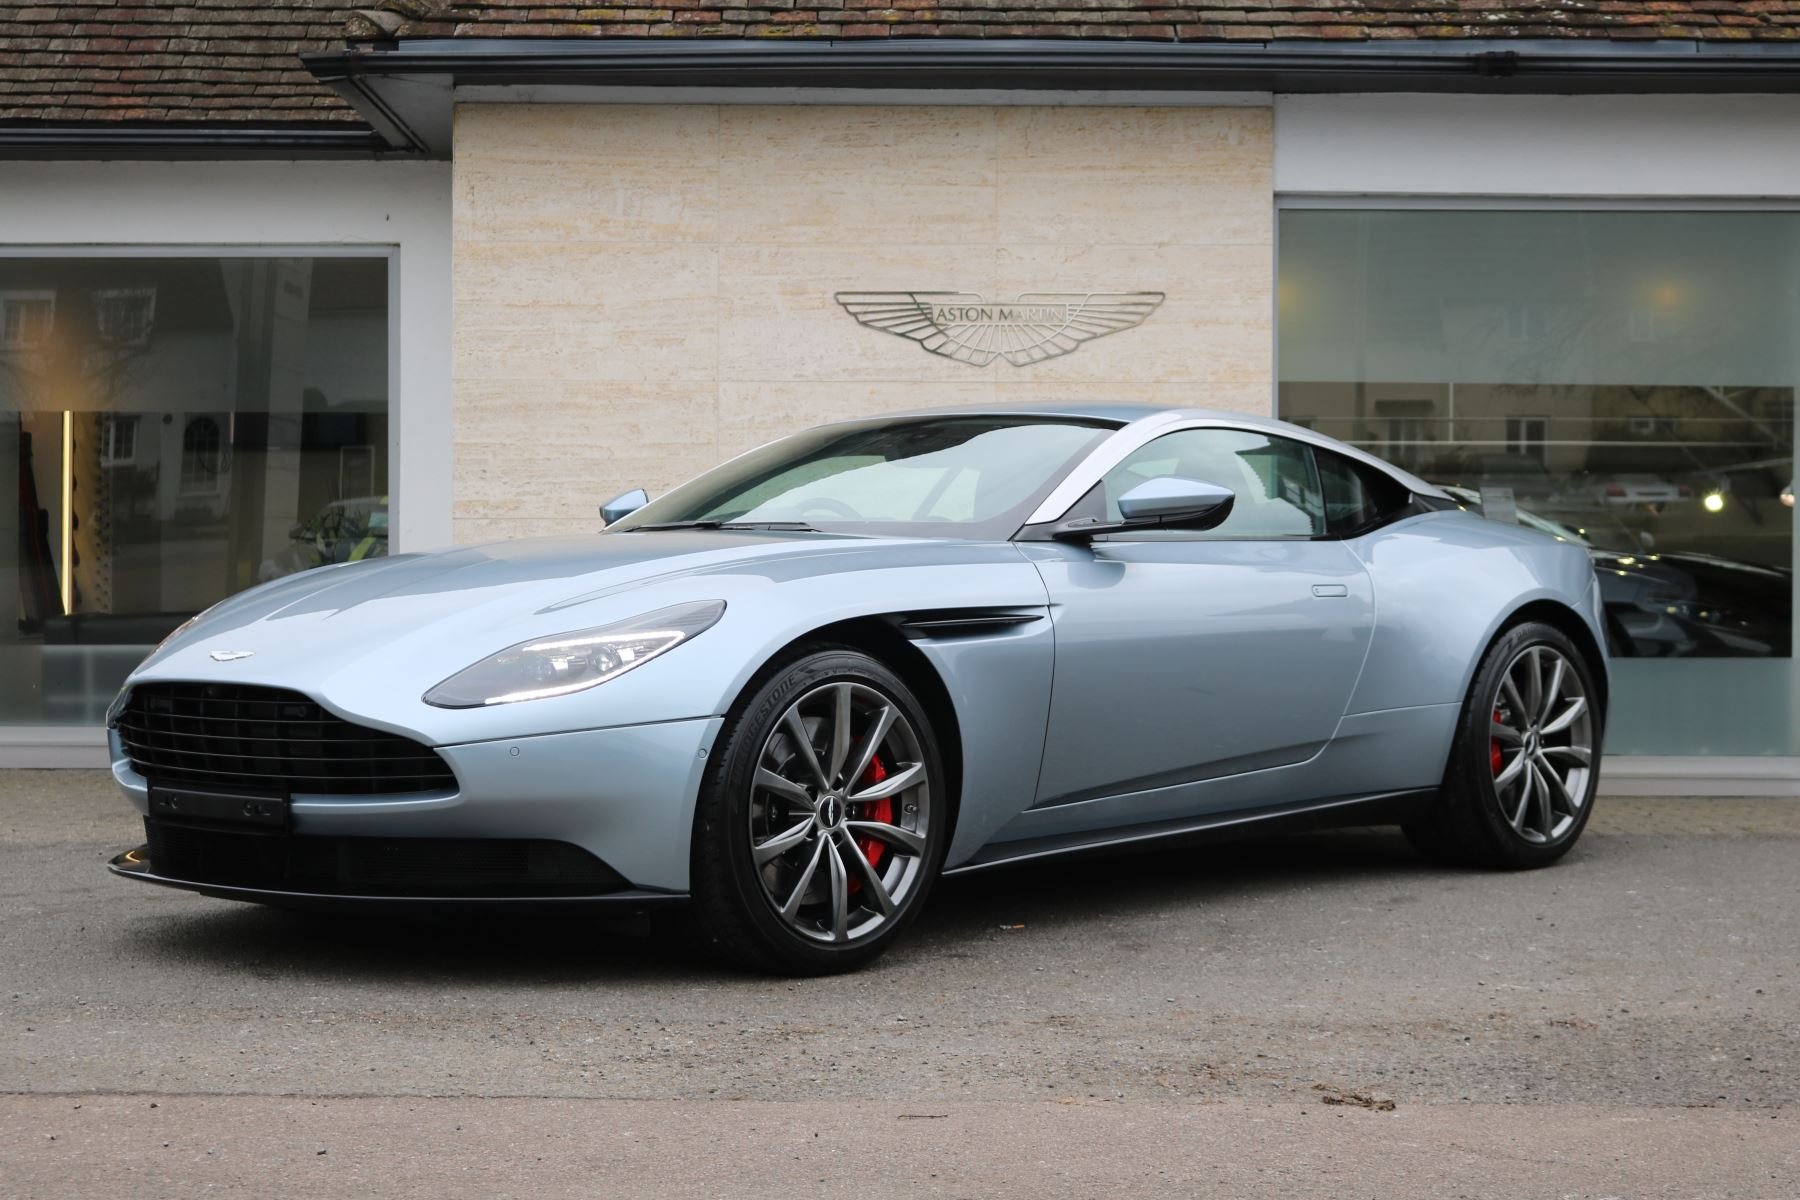 Aston Martin DB11 Coupe 4.0 Automatic 2 door (2018) image